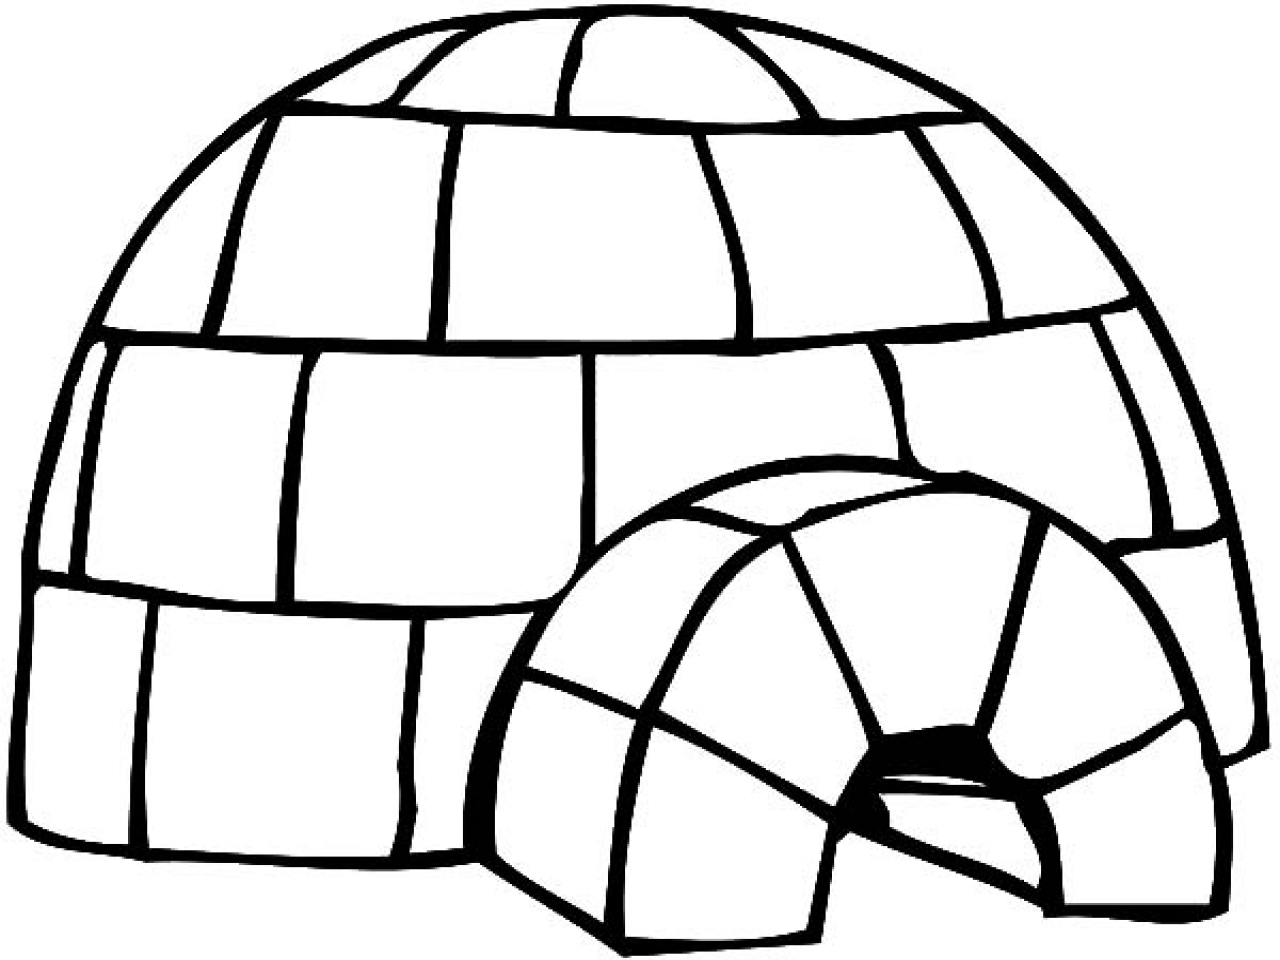 Igloo Coloring Page At Getcolorings